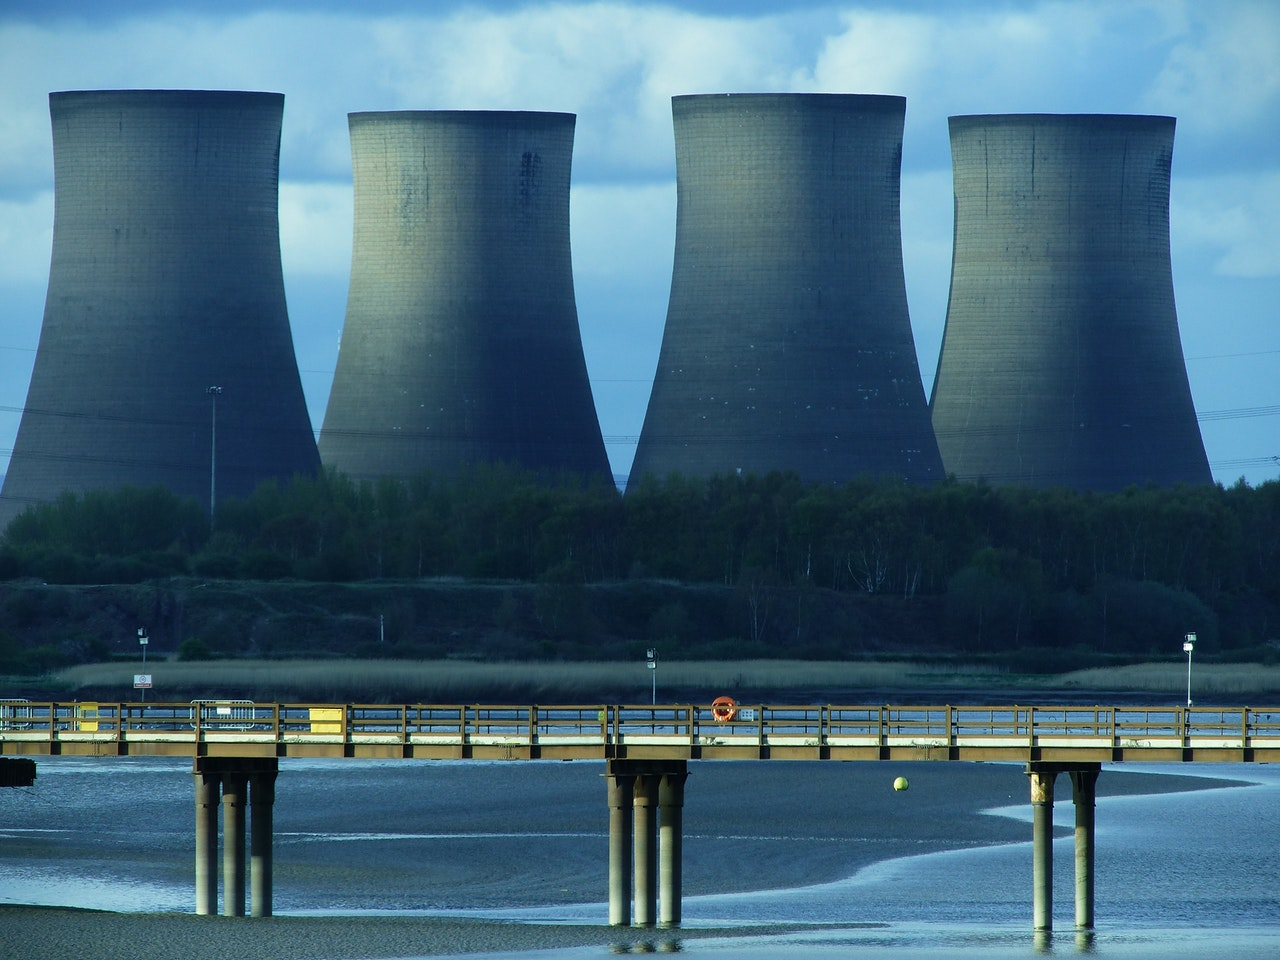 Fear of using nuclear energy might be contributing to global warming